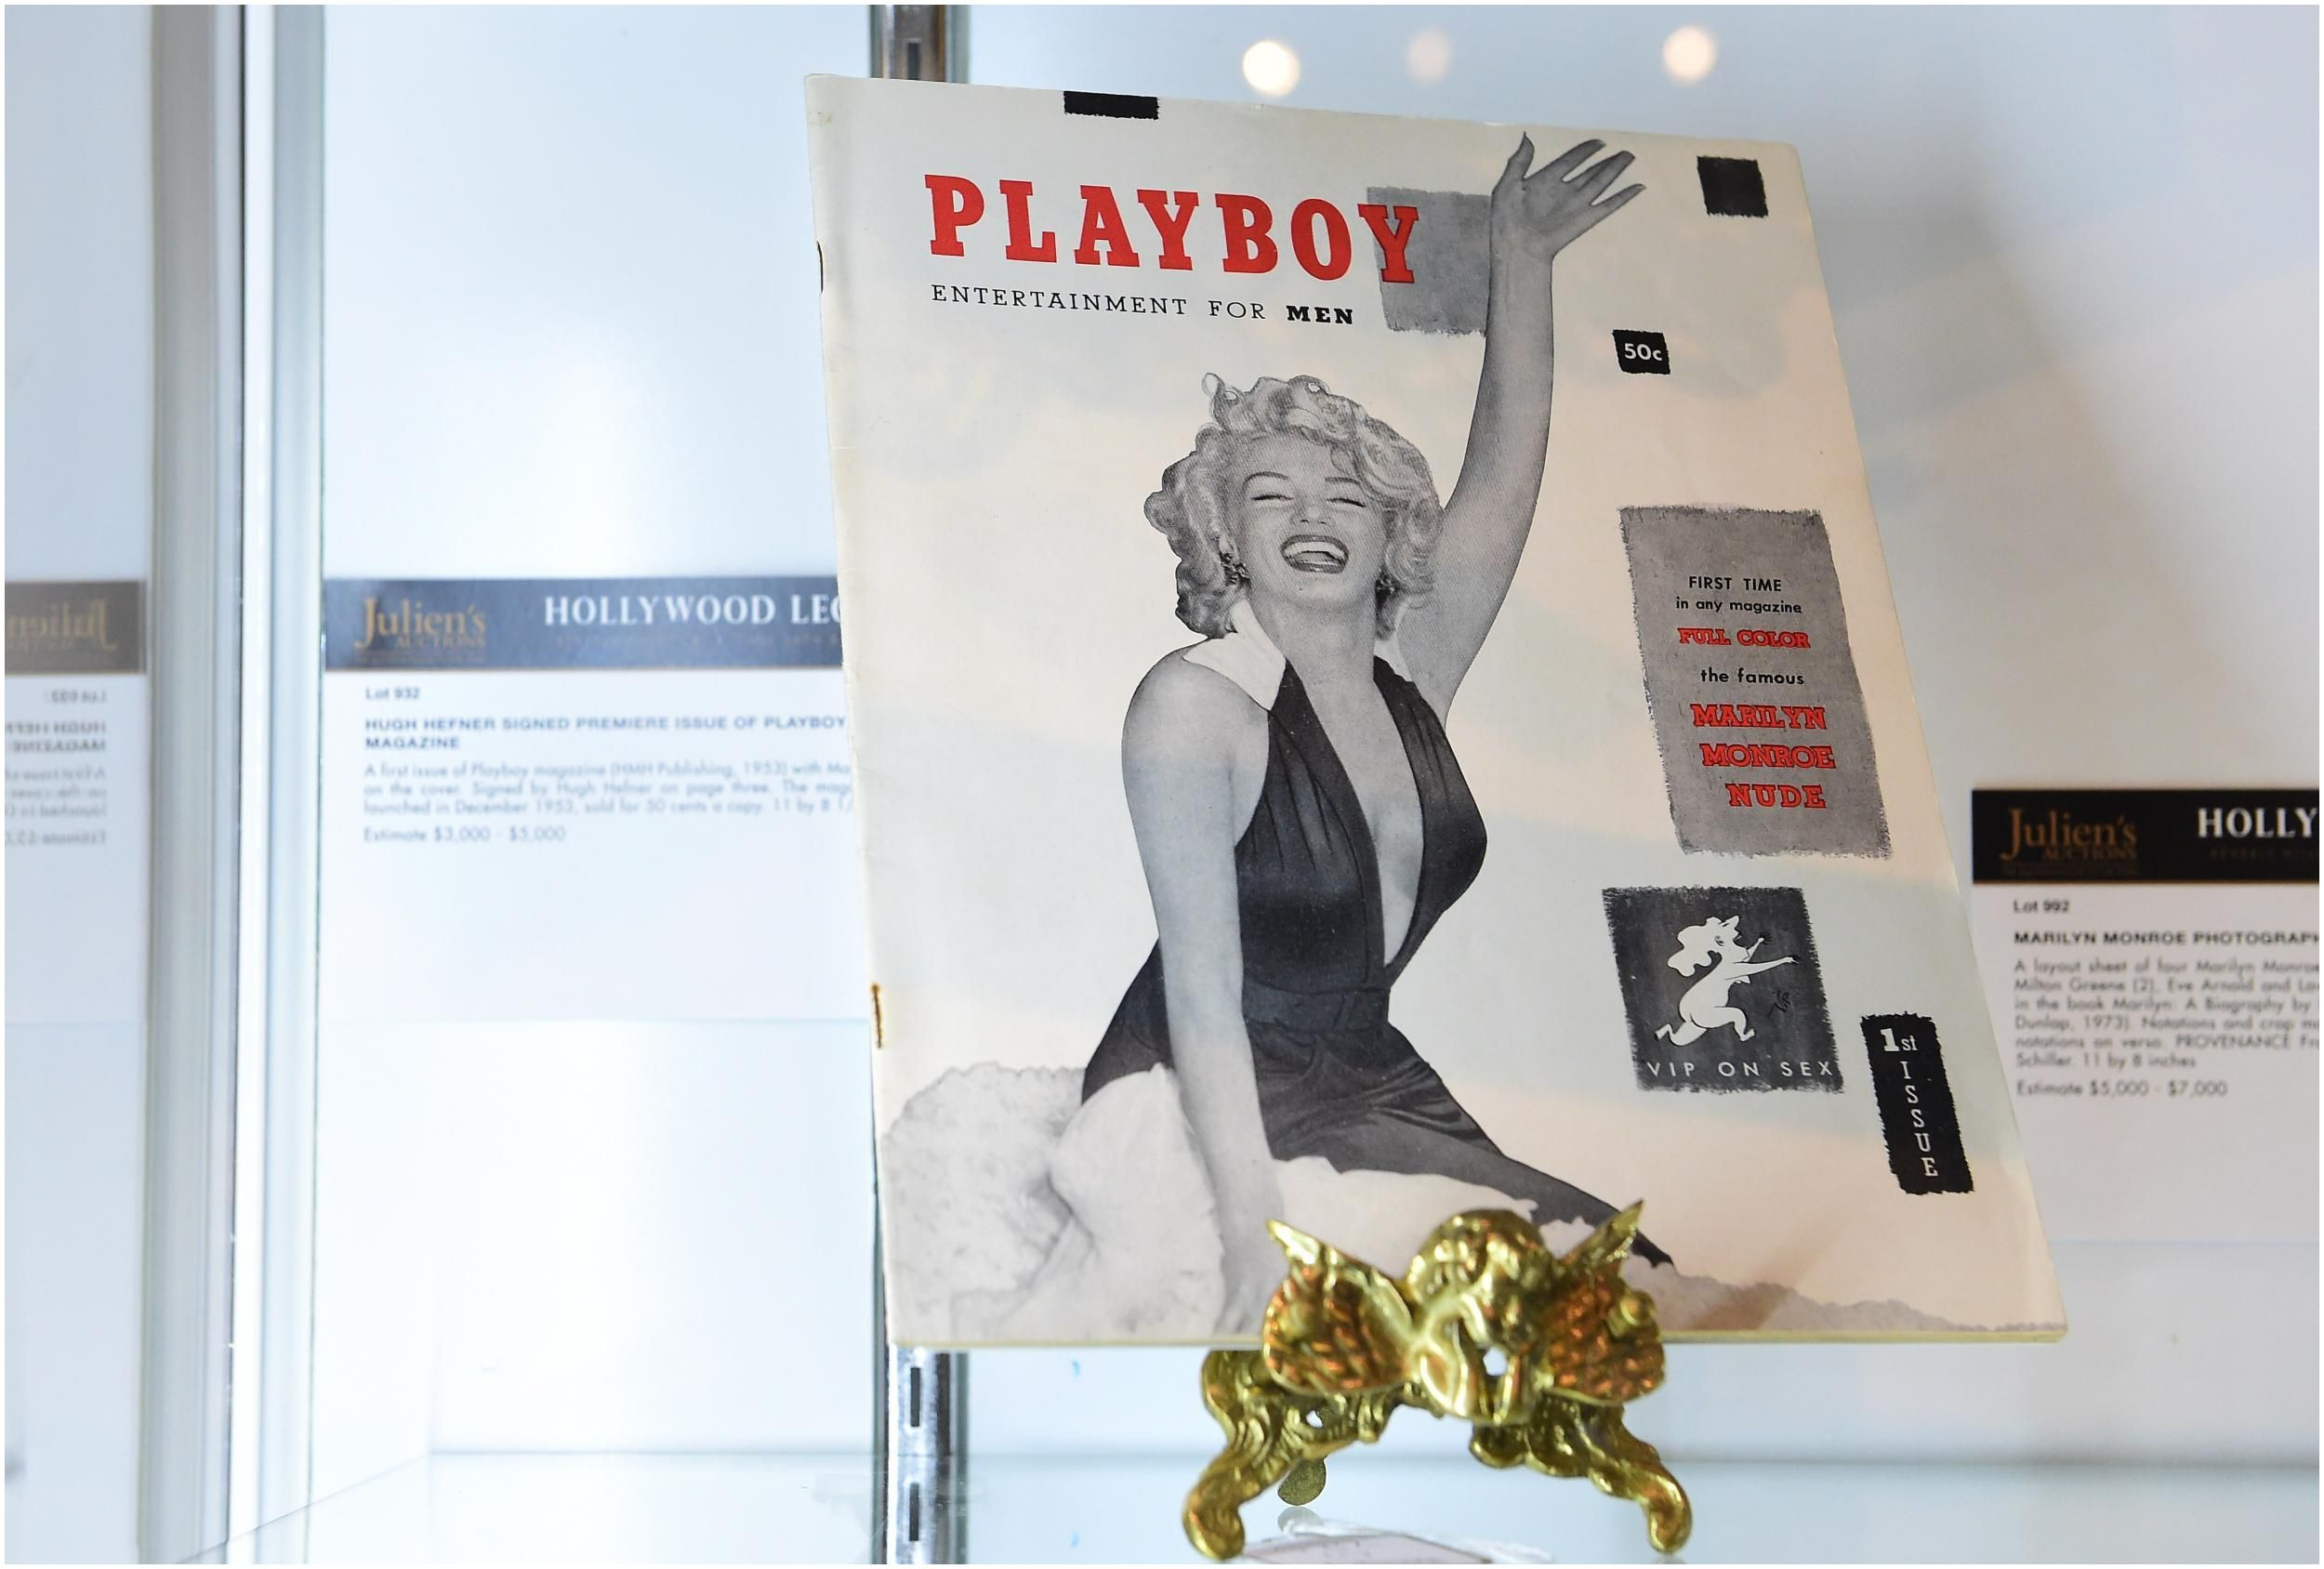 Playboy could end print magazine after 65 years says report